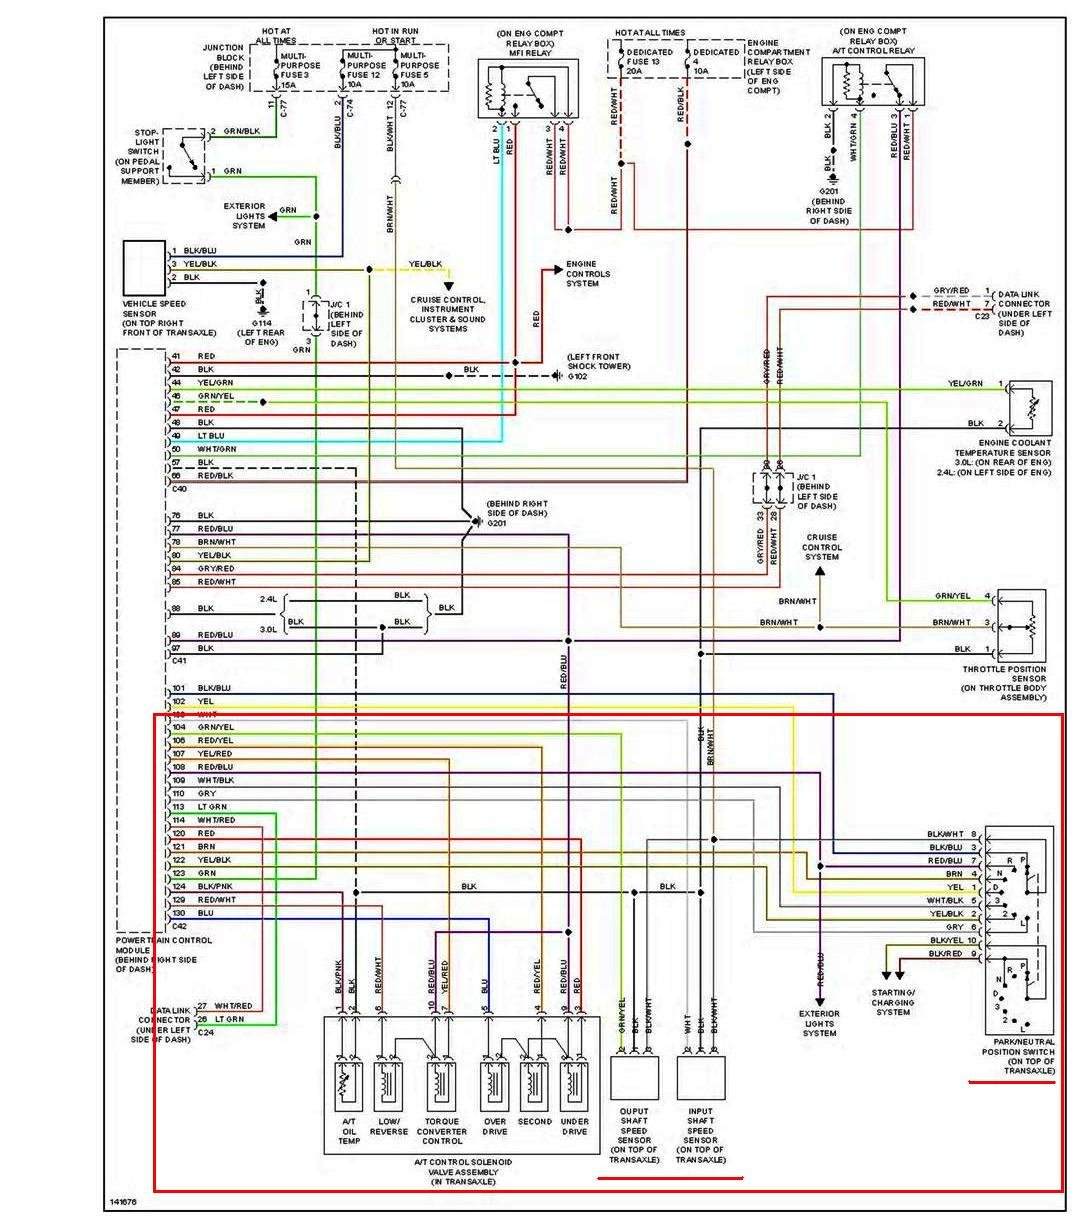 DIAGRAM] Solenoid Diagram For Galant FULL Version HD Quality For Galant -  AUTOACCIDENTDIAGRAM.RAPFRANCE.FR Database Design Tool - Create Database Diagrams Online